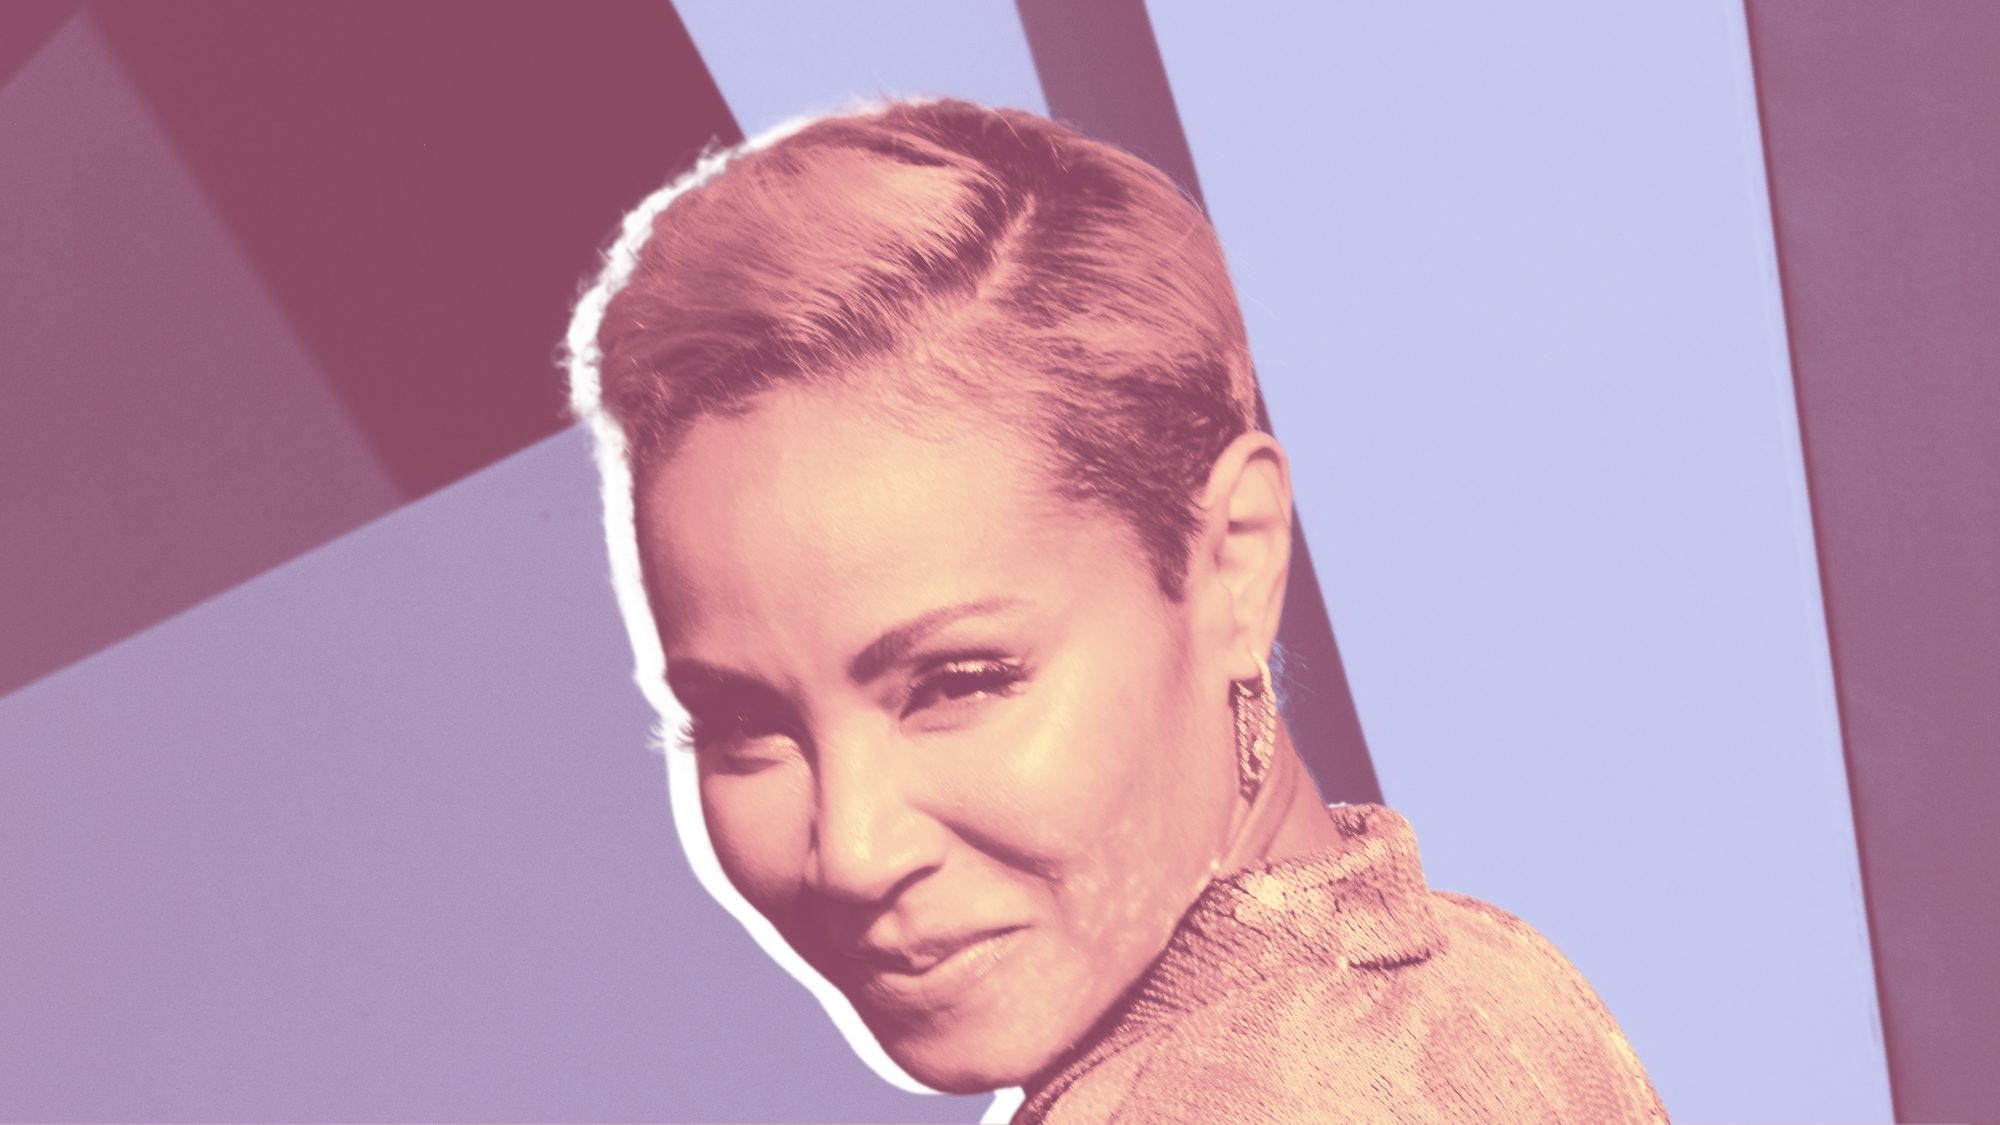 Jada Pinkett Smith Is in a Polyamorous Throuple. What Is That?